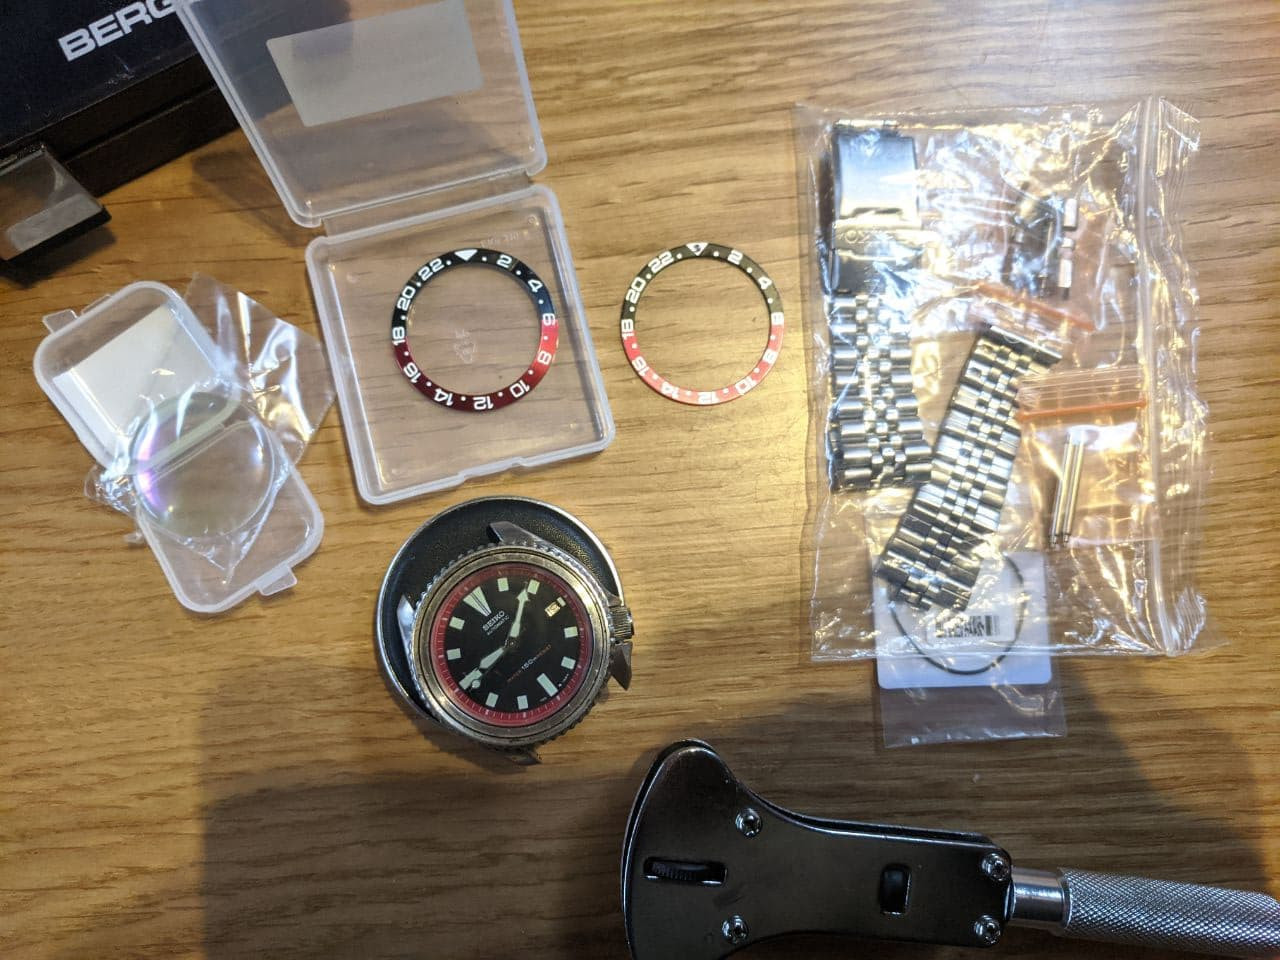 Watch service UK - Seiko 7002 for movement service, domed sapphire crystal replacement , new bezel insert GMT Coke